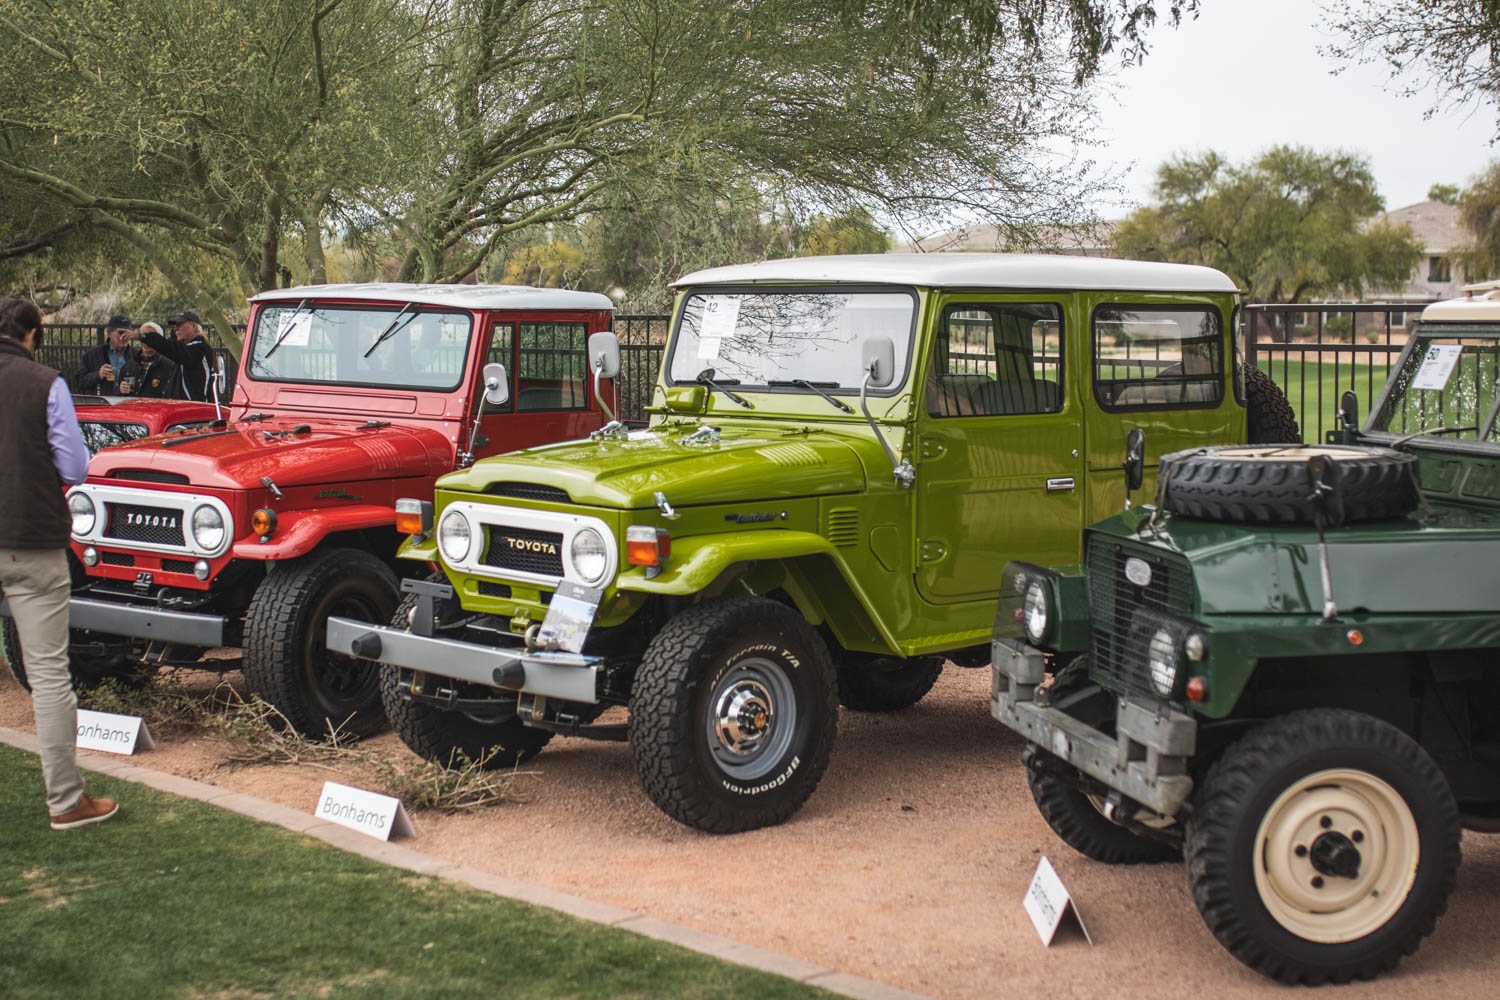 Bonhams Scottsdale sale